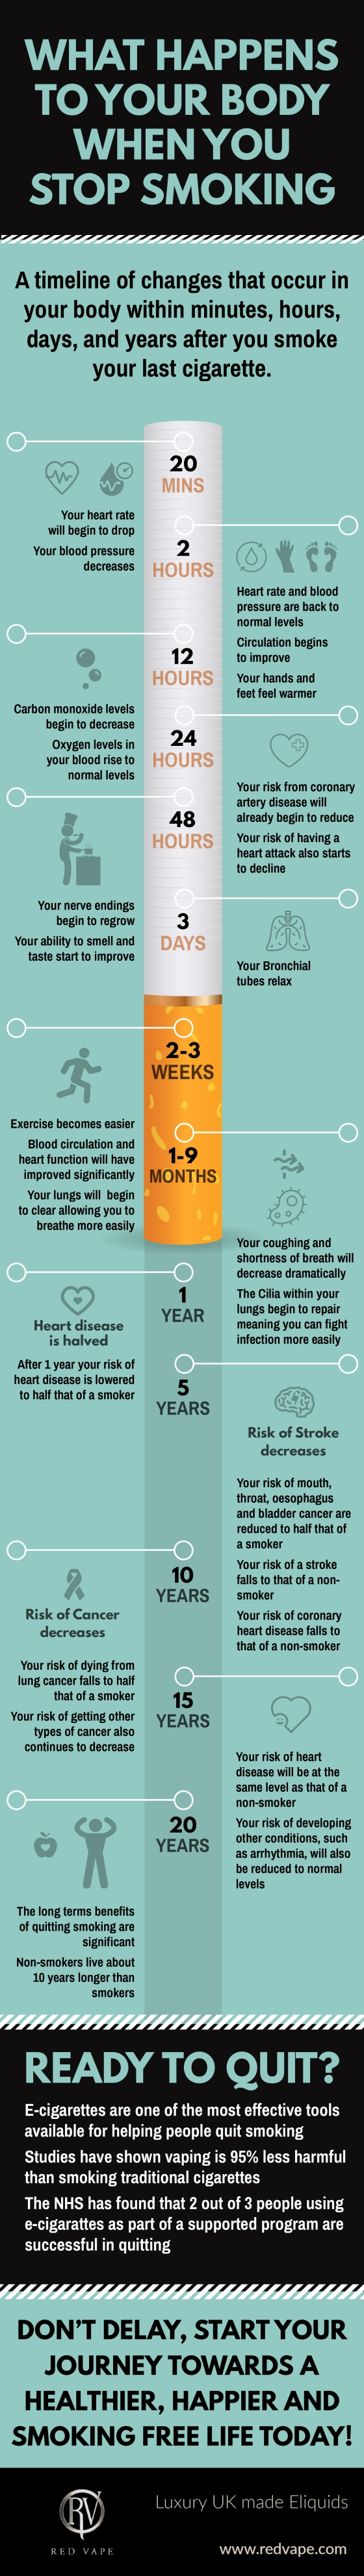 Infographic: Stop Smoking Health Improvment Timeline